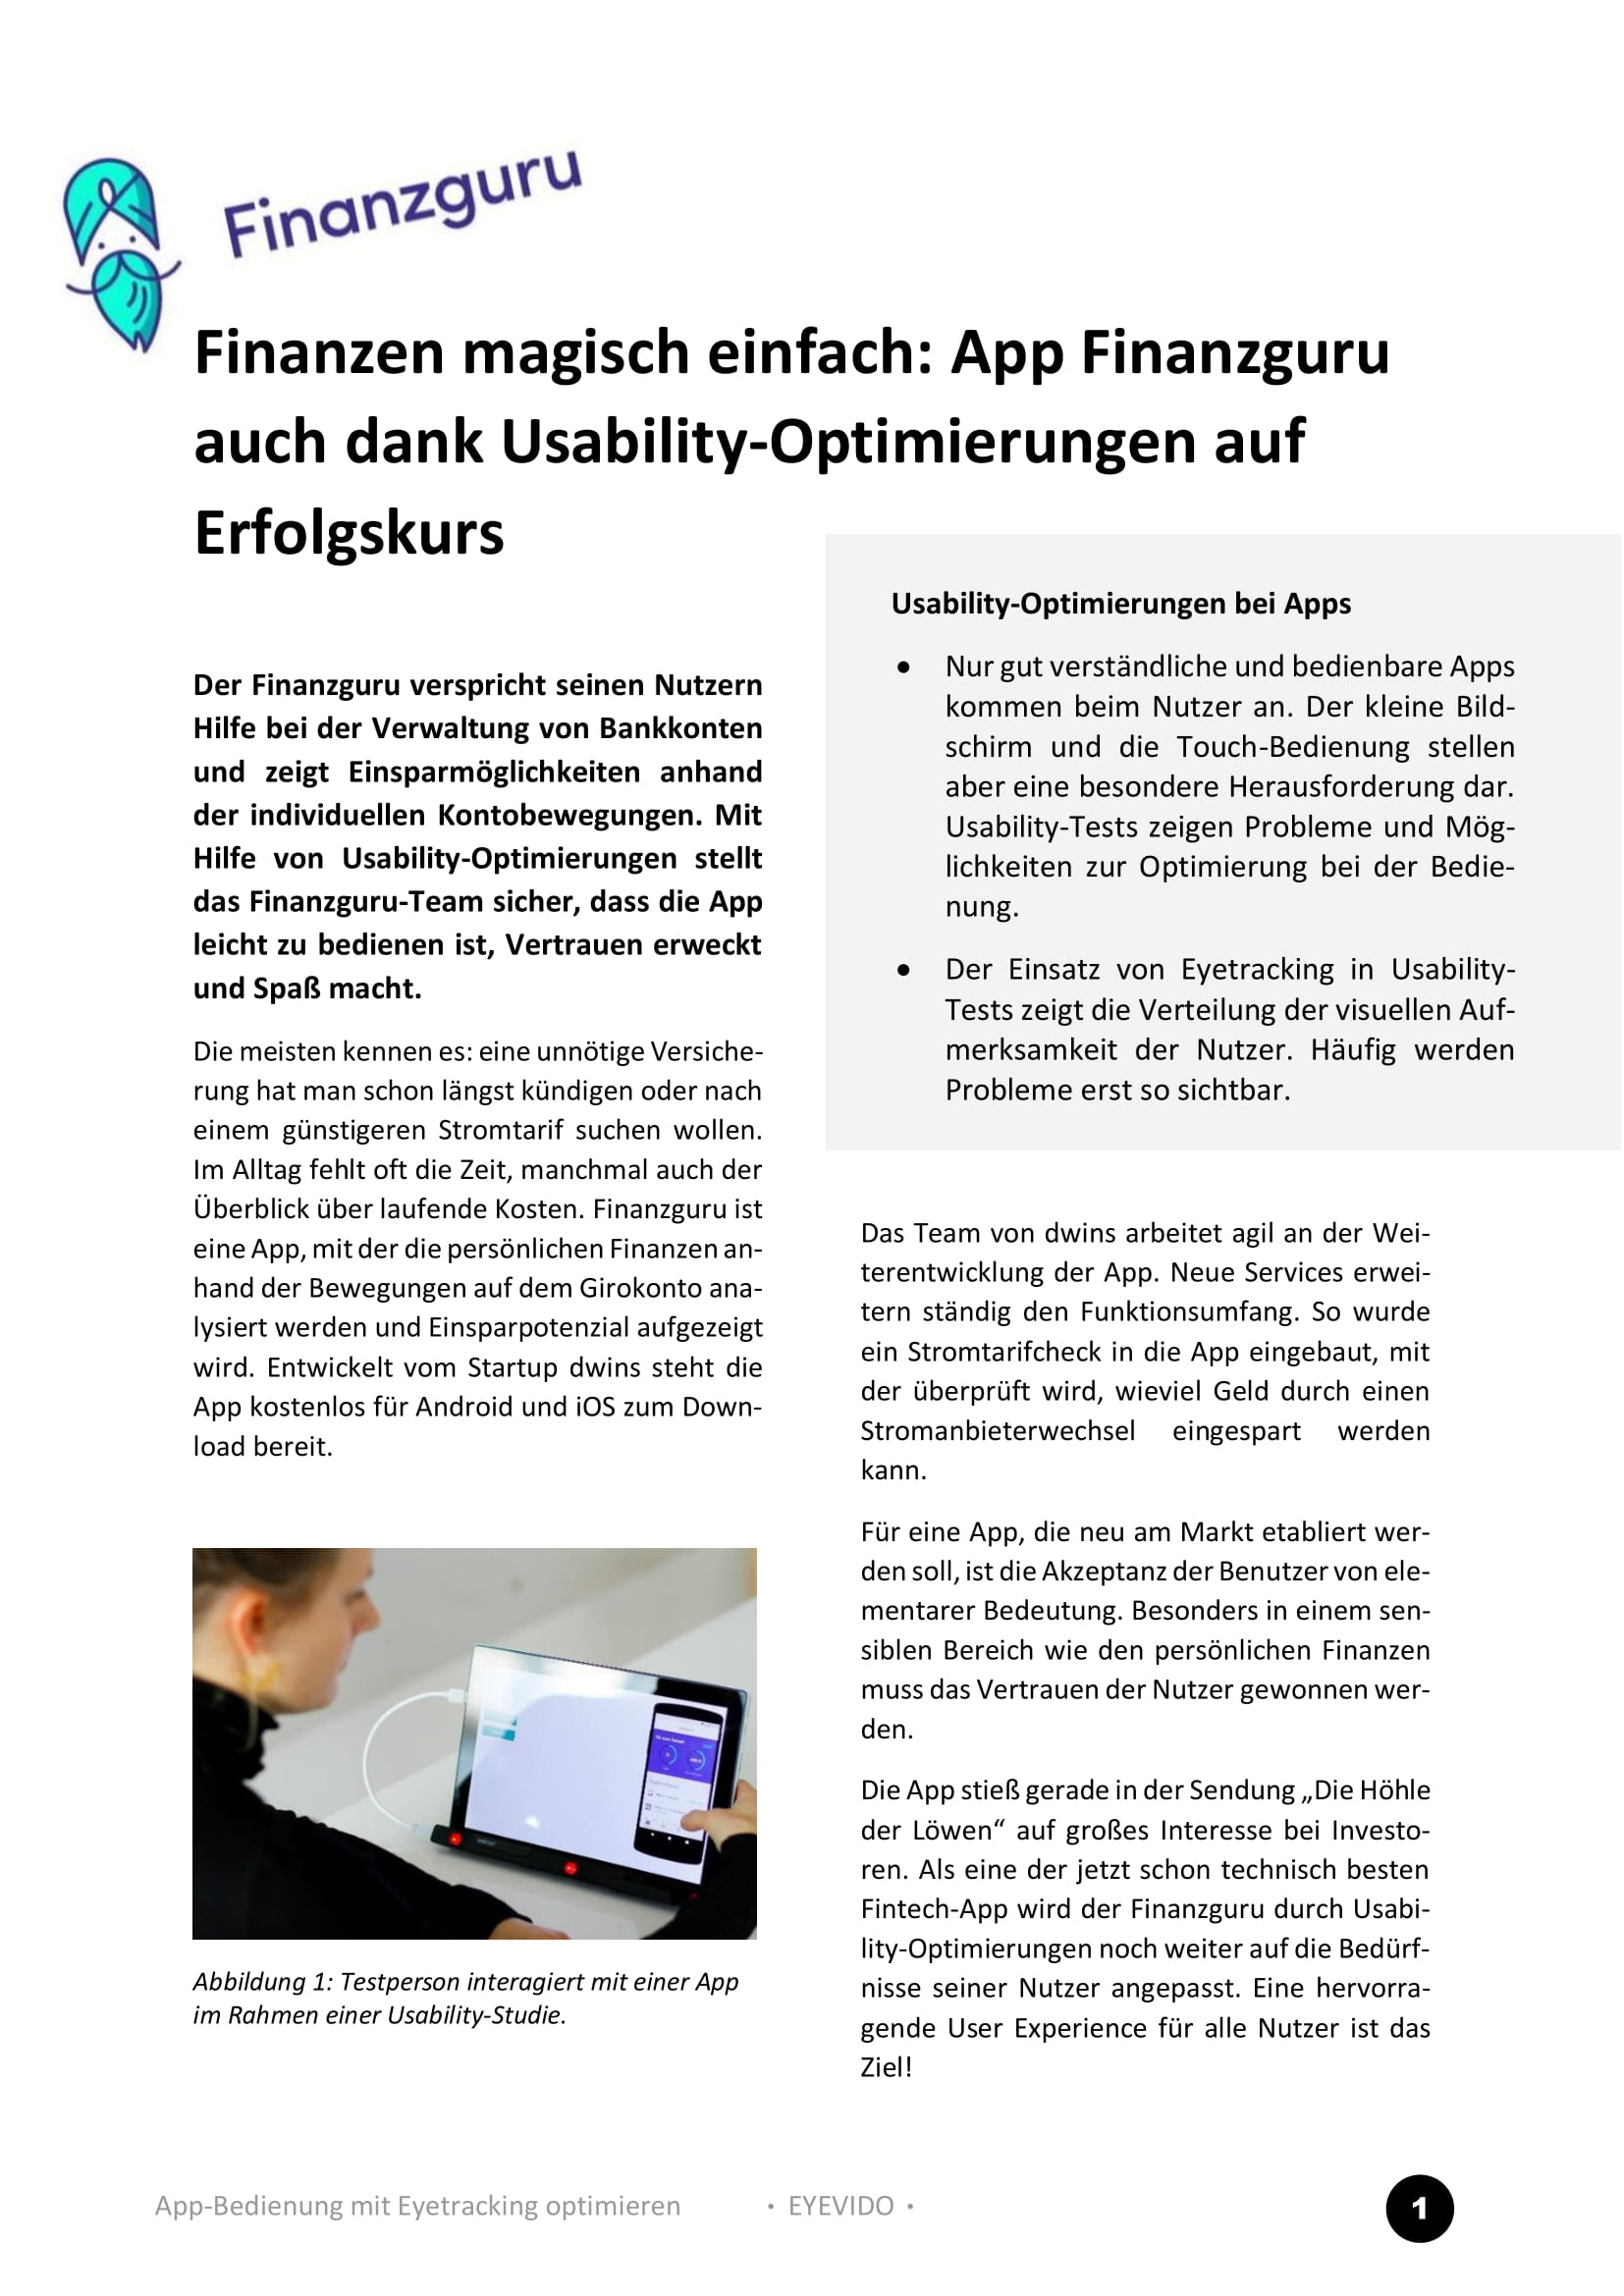 <i>Case Study:</i> Finanzguru App also on the road to success thanks to usability optimizations